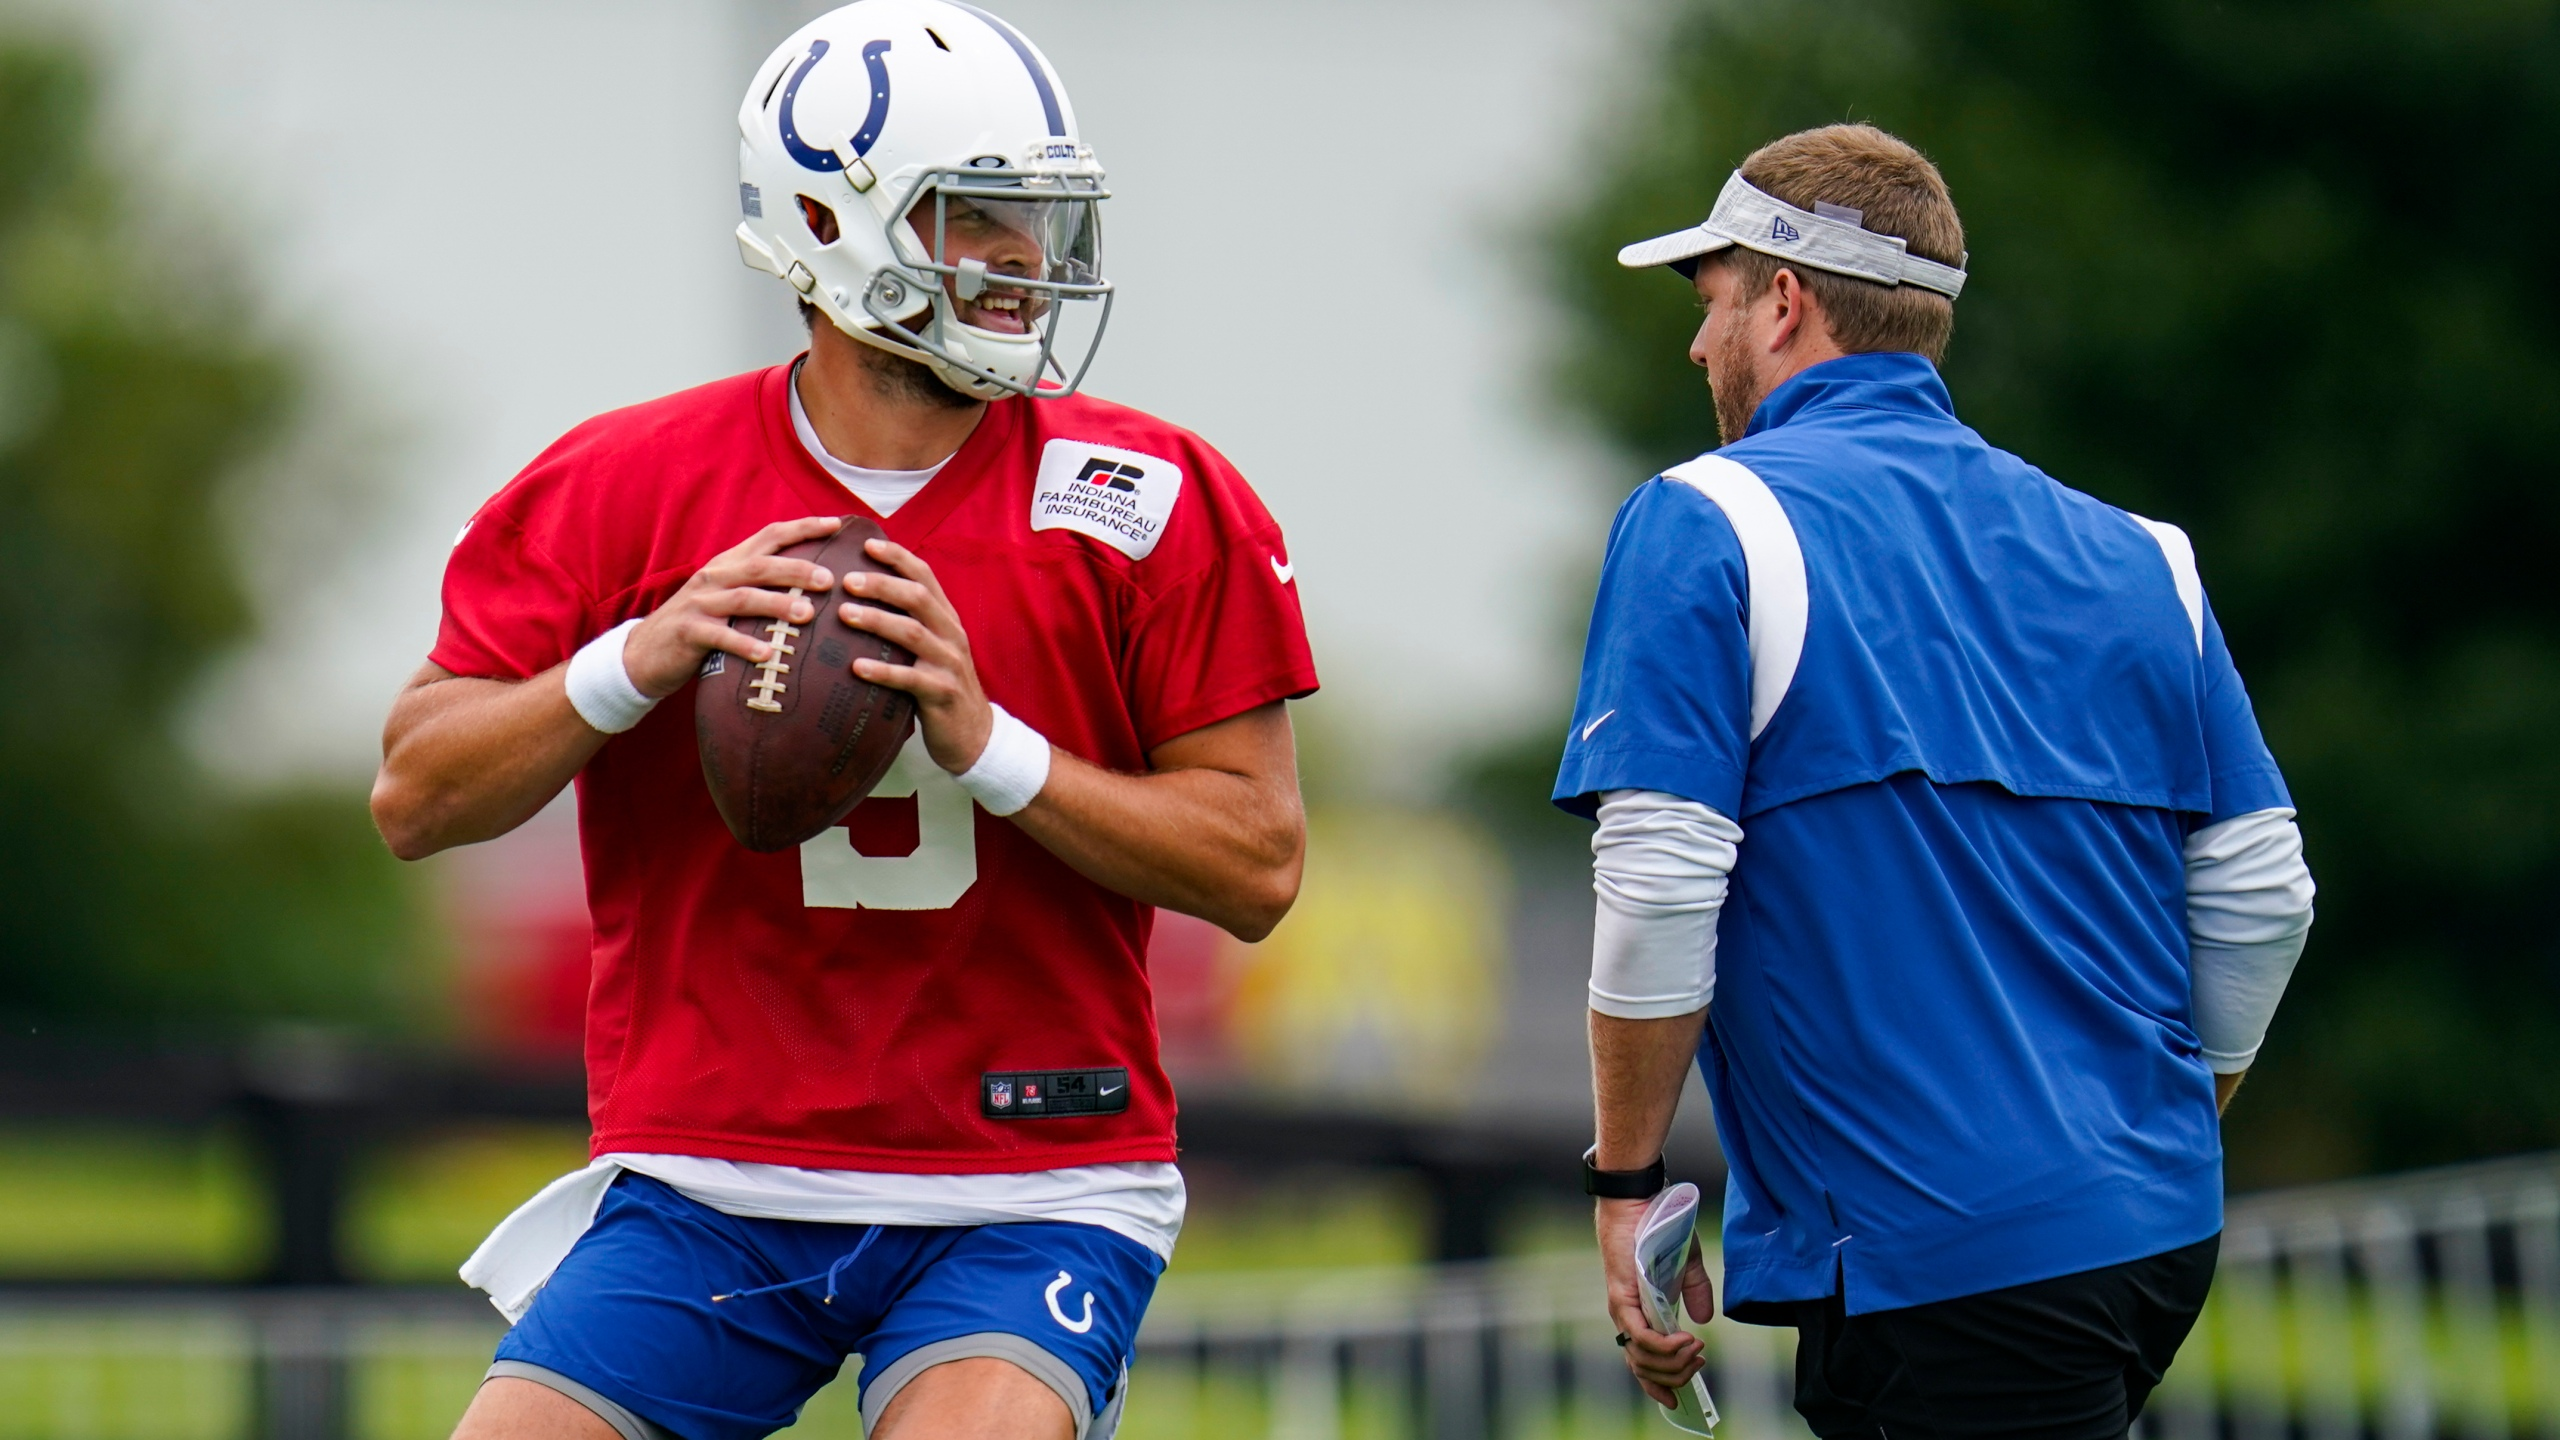 Indianapolis Colts quarterback Jacob Eason runs a drill during practice at the NFL team's football training camp in Westfield, Ind.